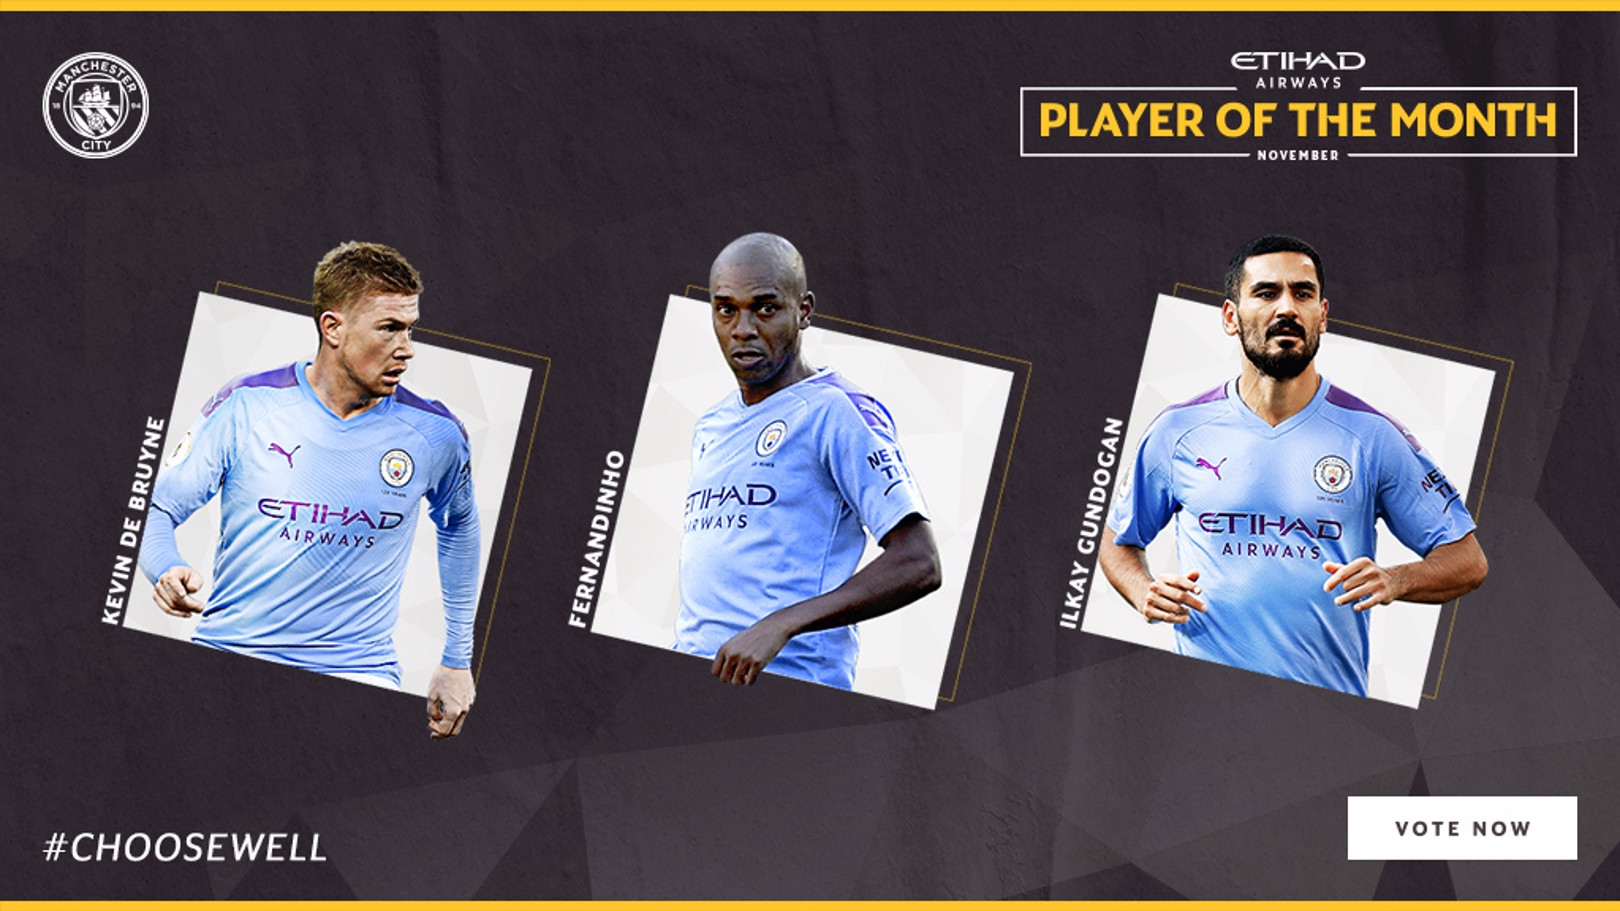 POTM VOTE: Fans can vote for the November Player of the Month